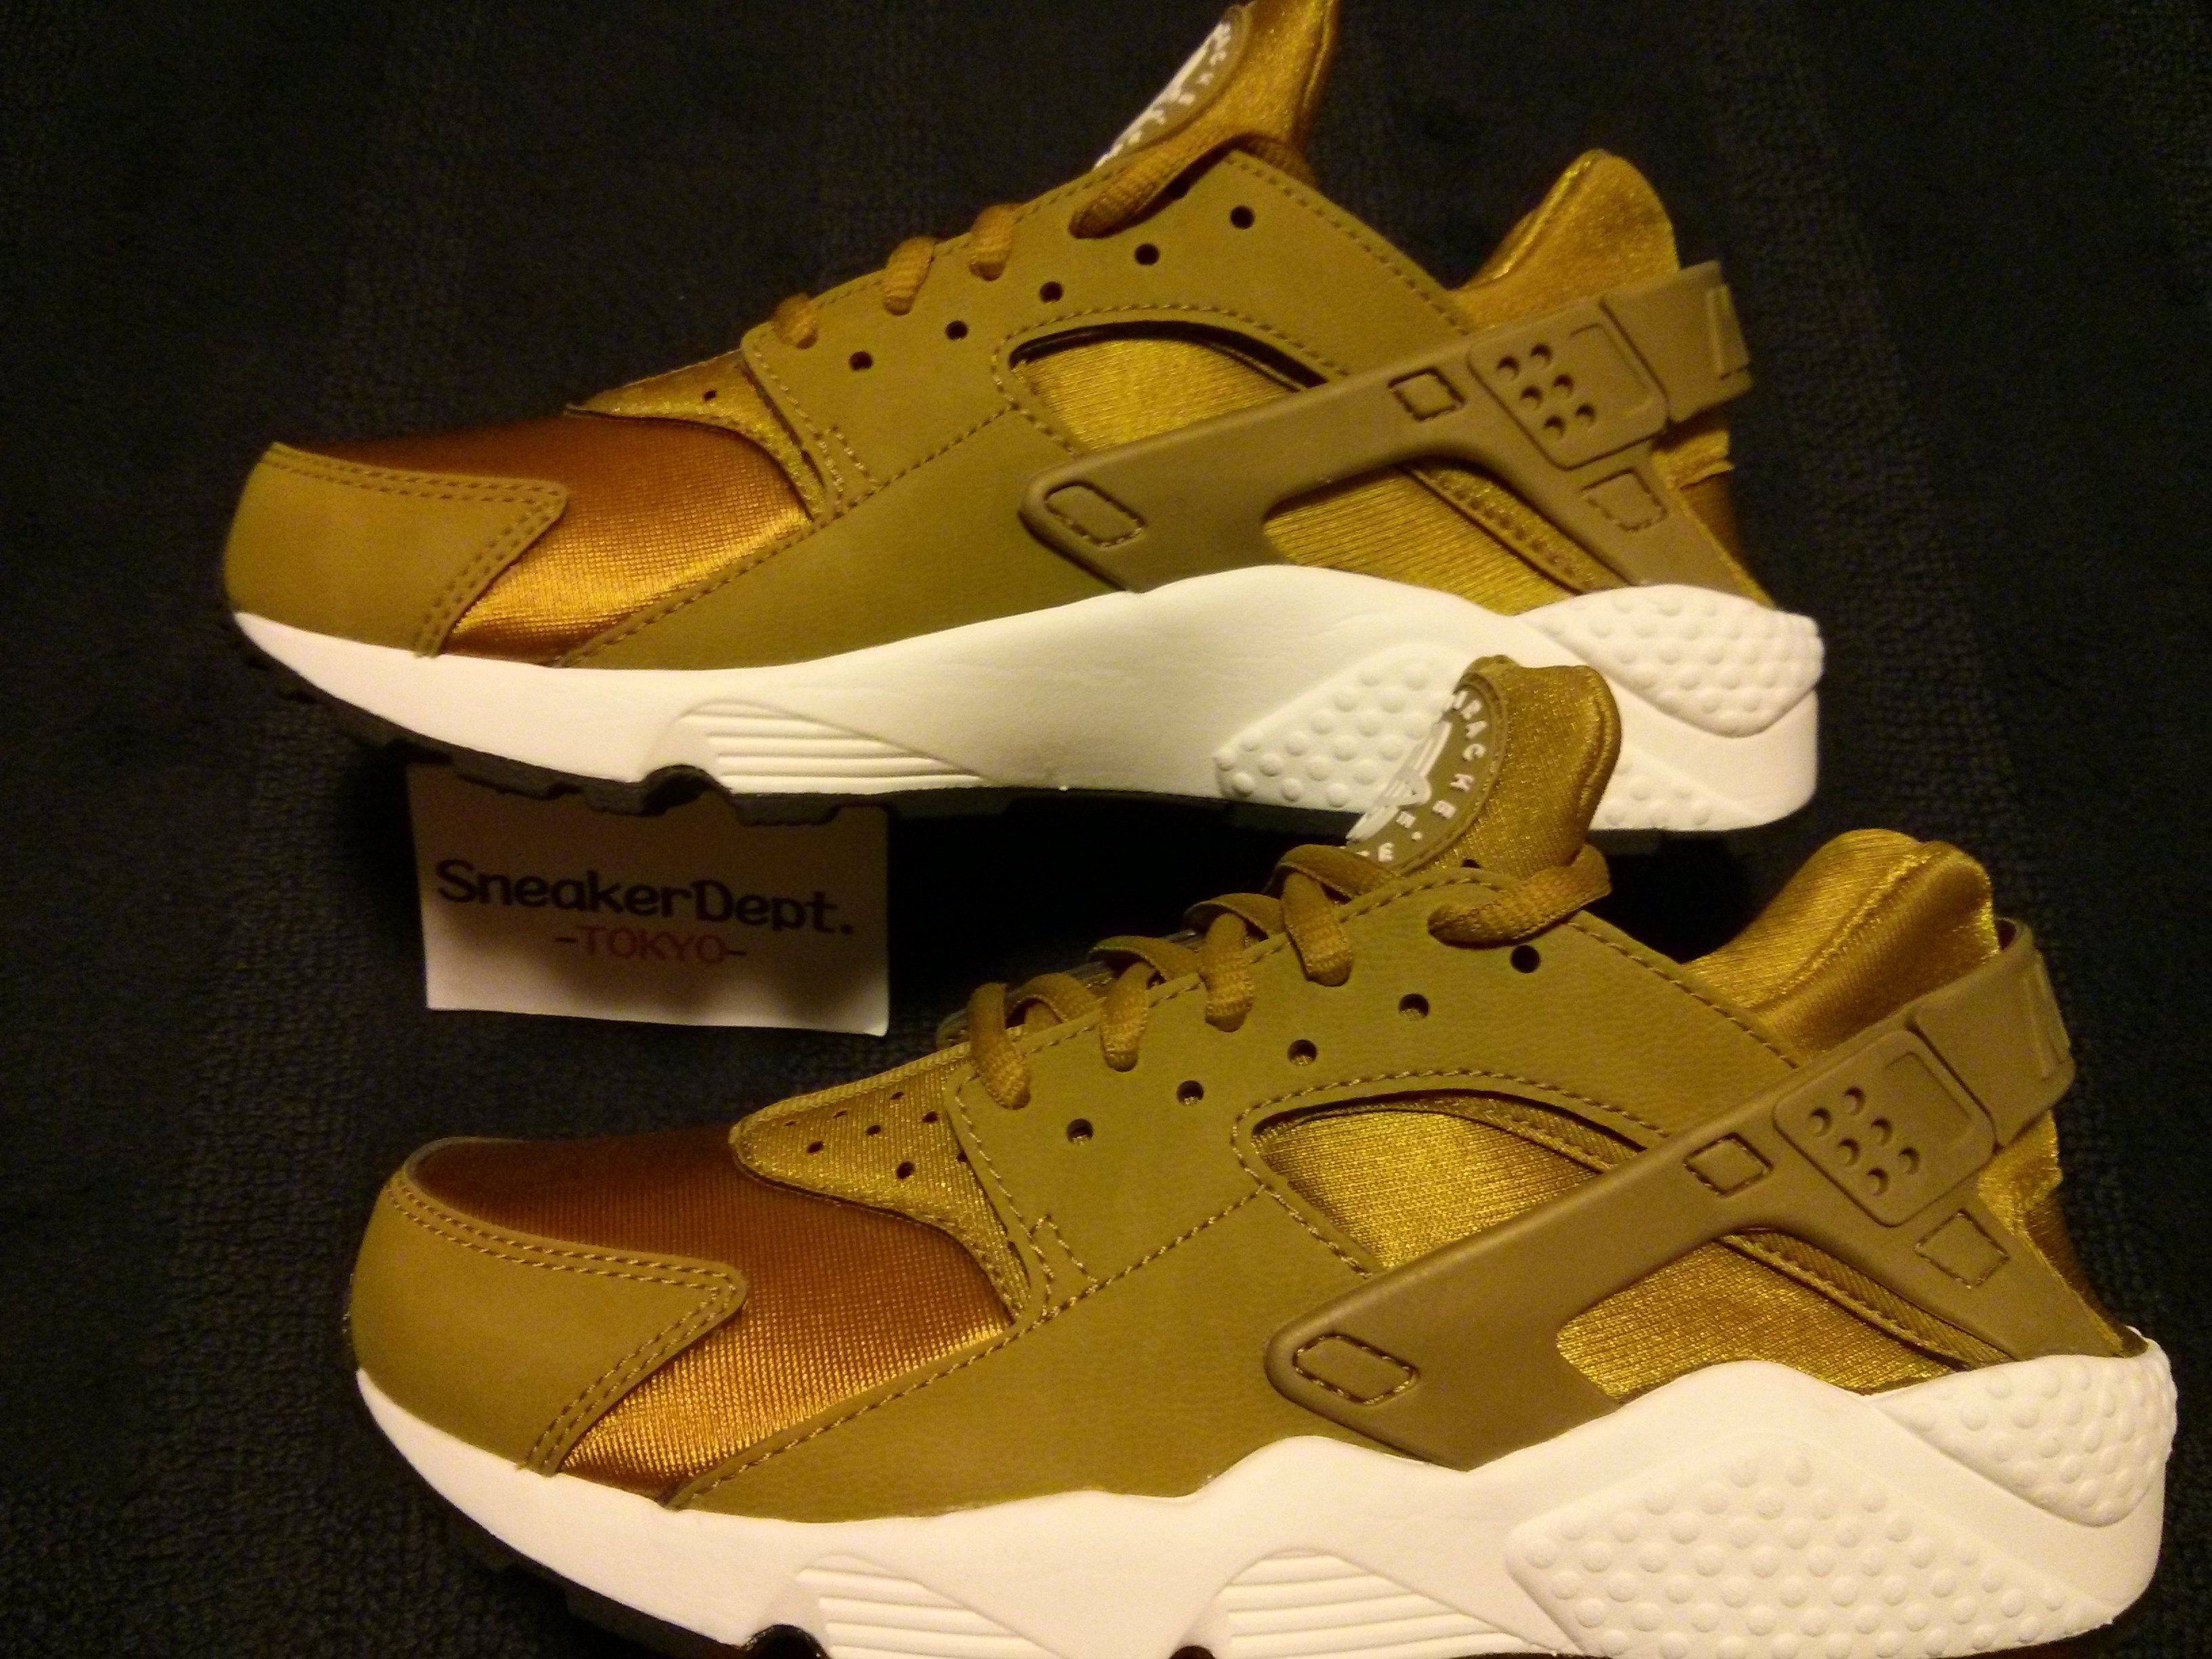 WMNS AIR HUARACHE RUN 634835-700 エアハラチ